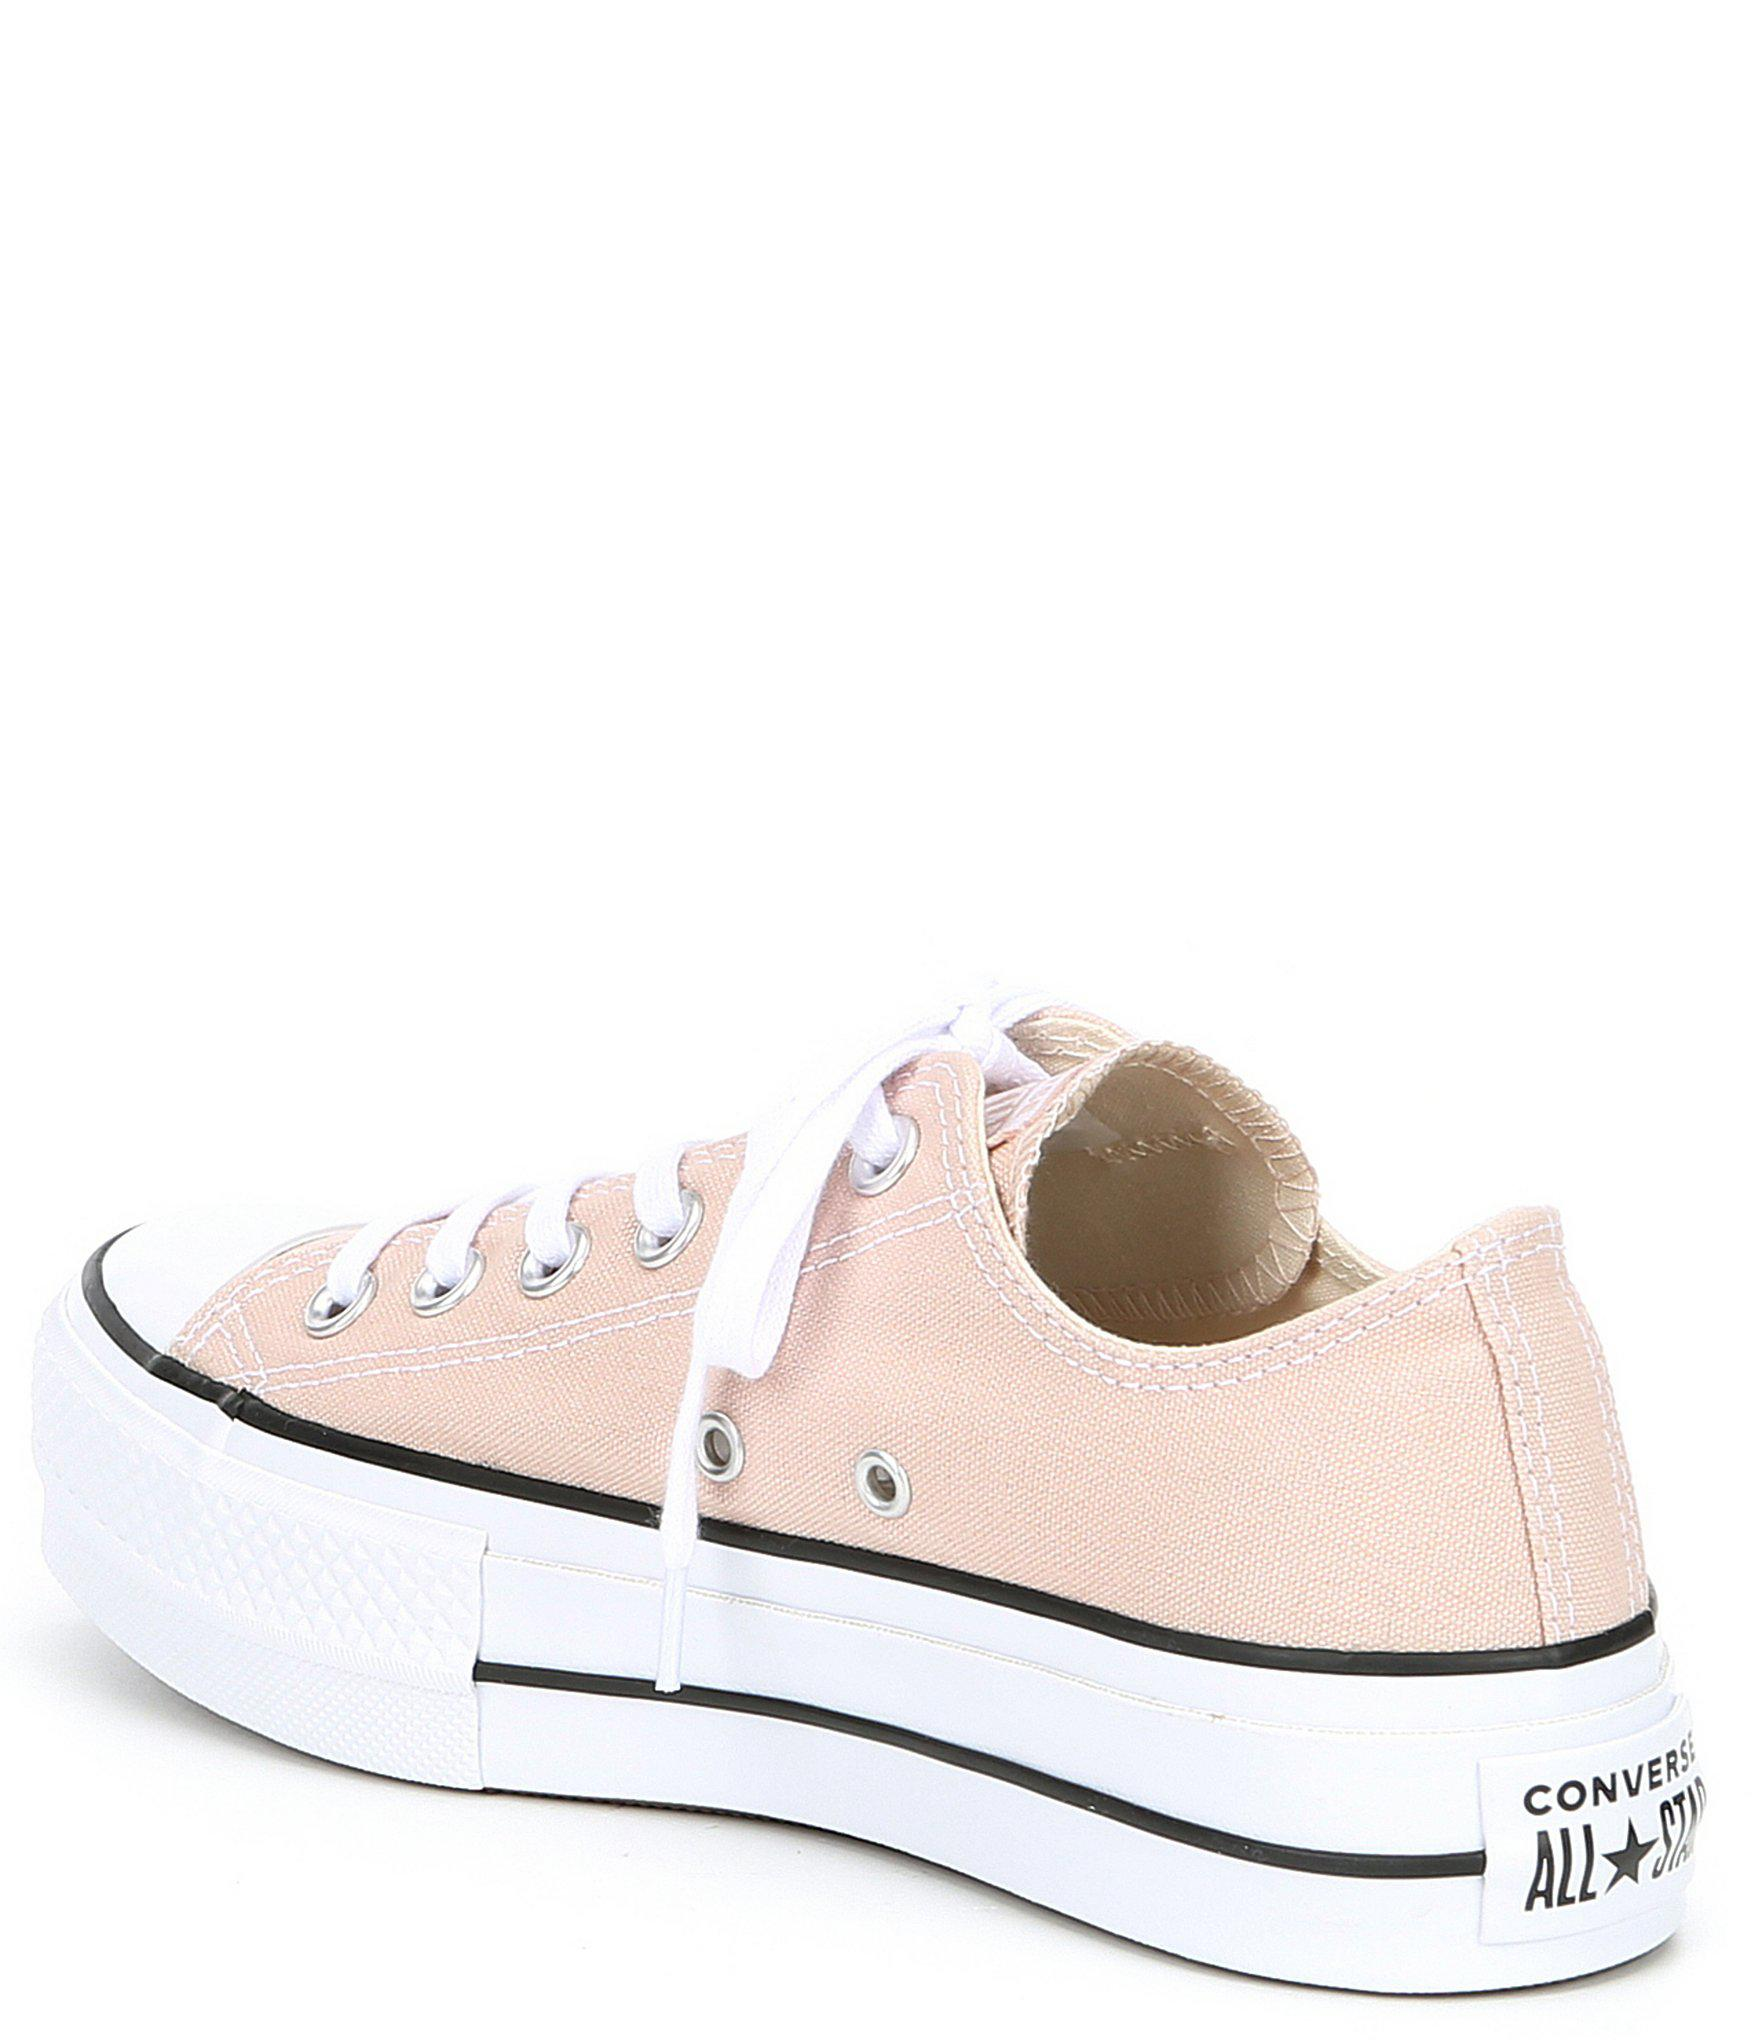 6ef1a6c1b4e15d Converse - White Women s Chuck Taylor All Star Color Lift Sneakers - Lyst.  View fullscreen